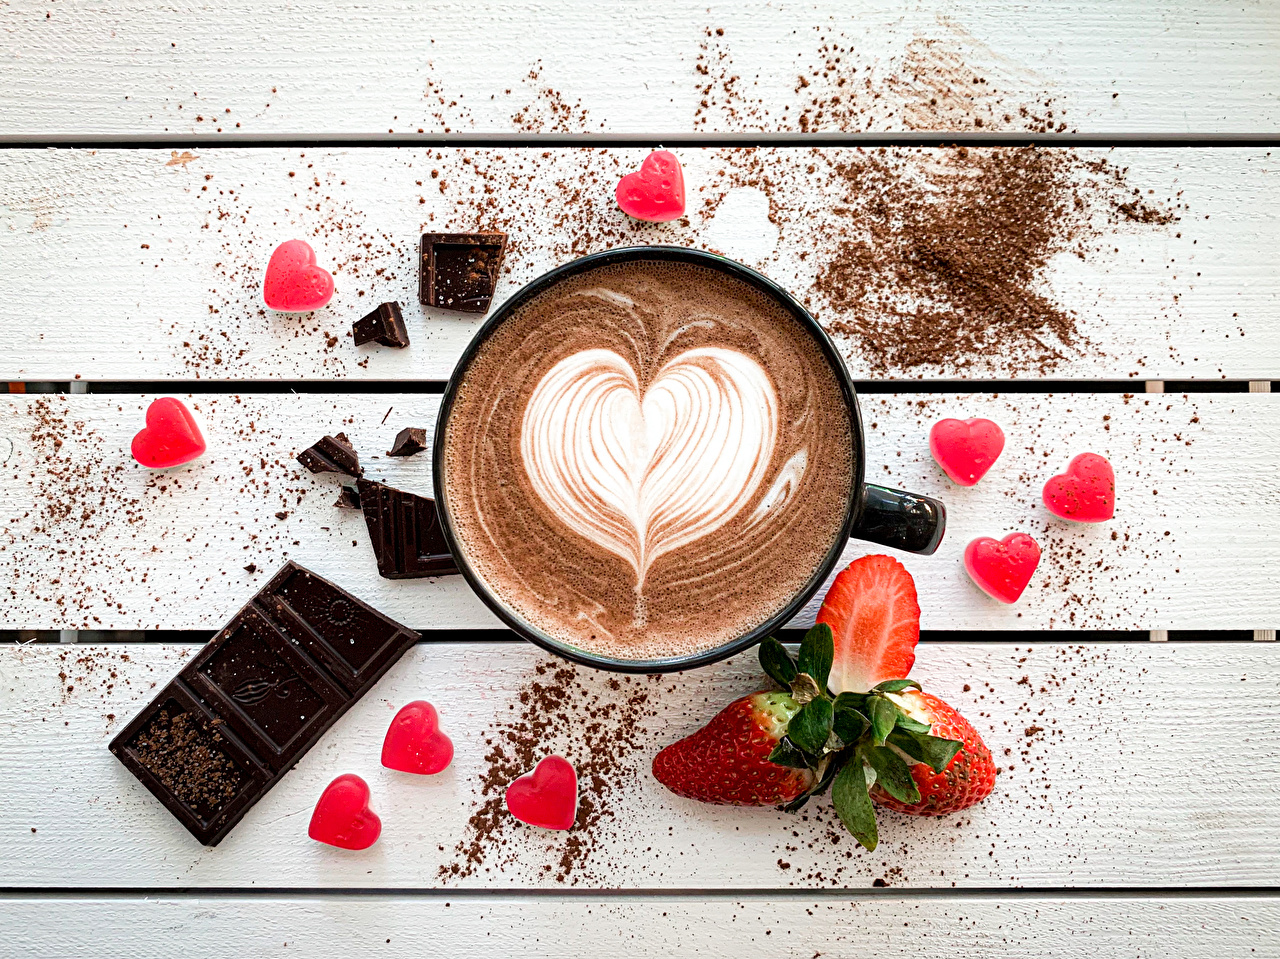 Images Heart Chocolate Coffee Strawberry Mug Food Berry boards Wood planks